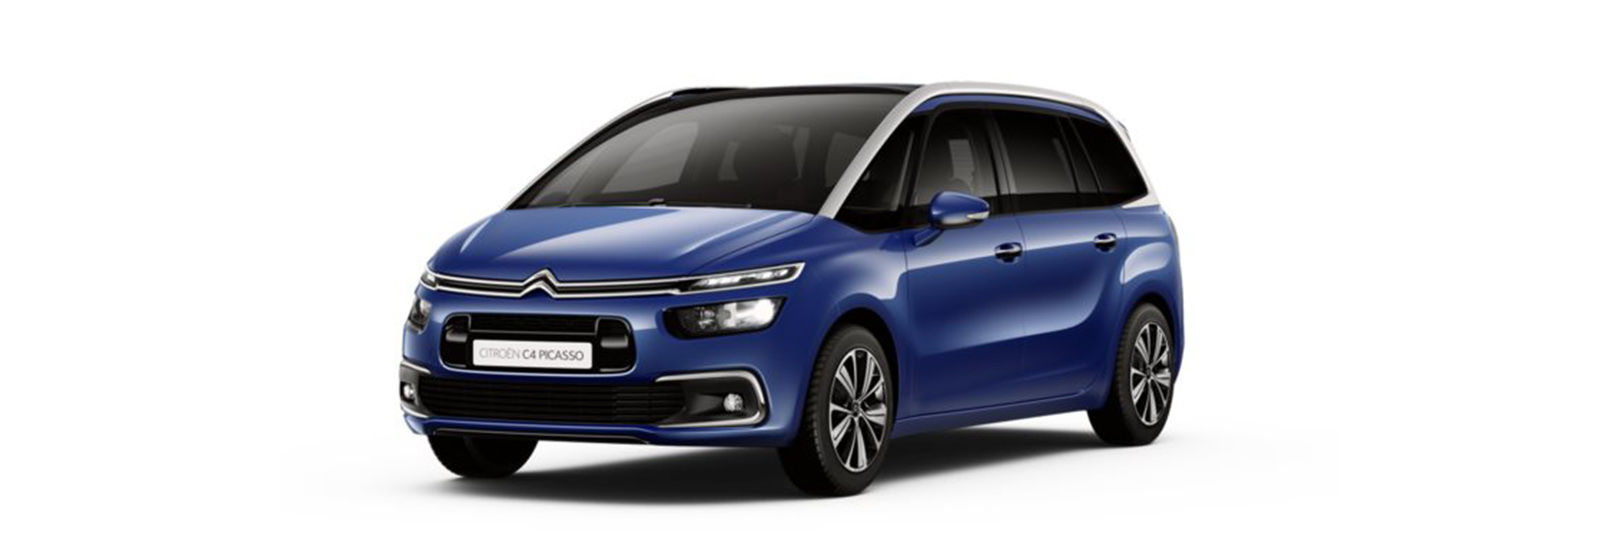 Citroen grand c4 picasso colours guide carwow factory fresh will require regular trips to the car wash but it should prove relatively easy to sell when the time comes to replace your c4 picasso vanachro Image collections